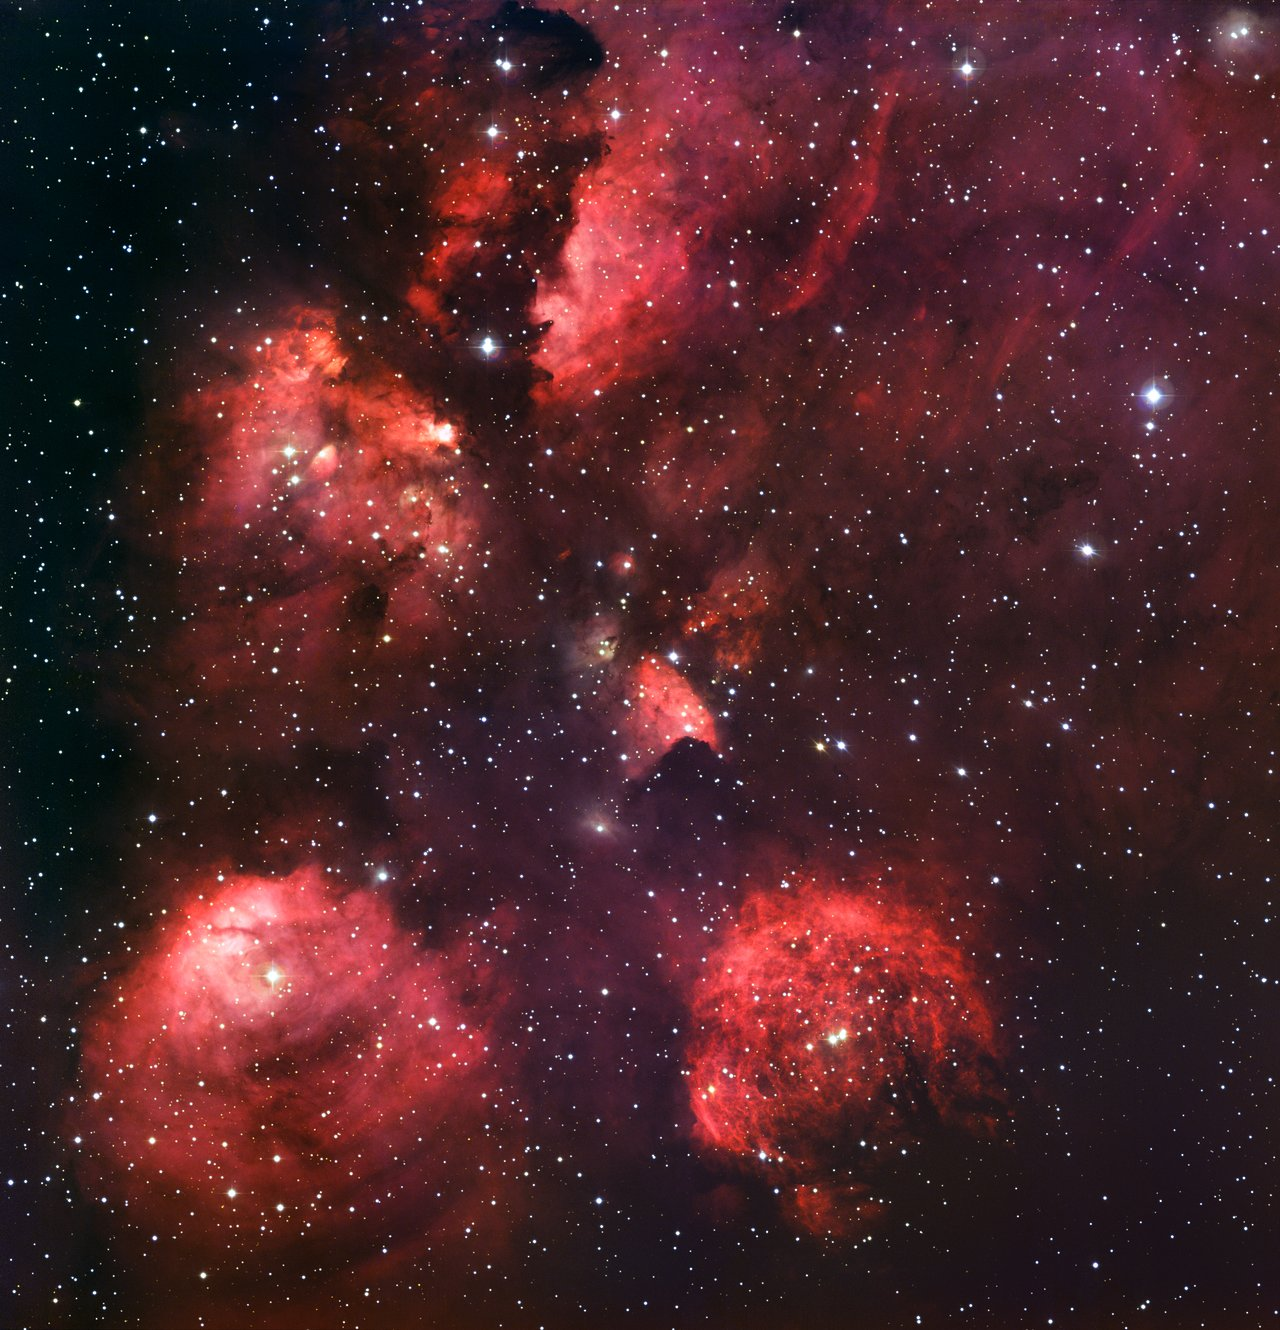 Best image ever of the Cats Paw Nebula; click image to enlarge